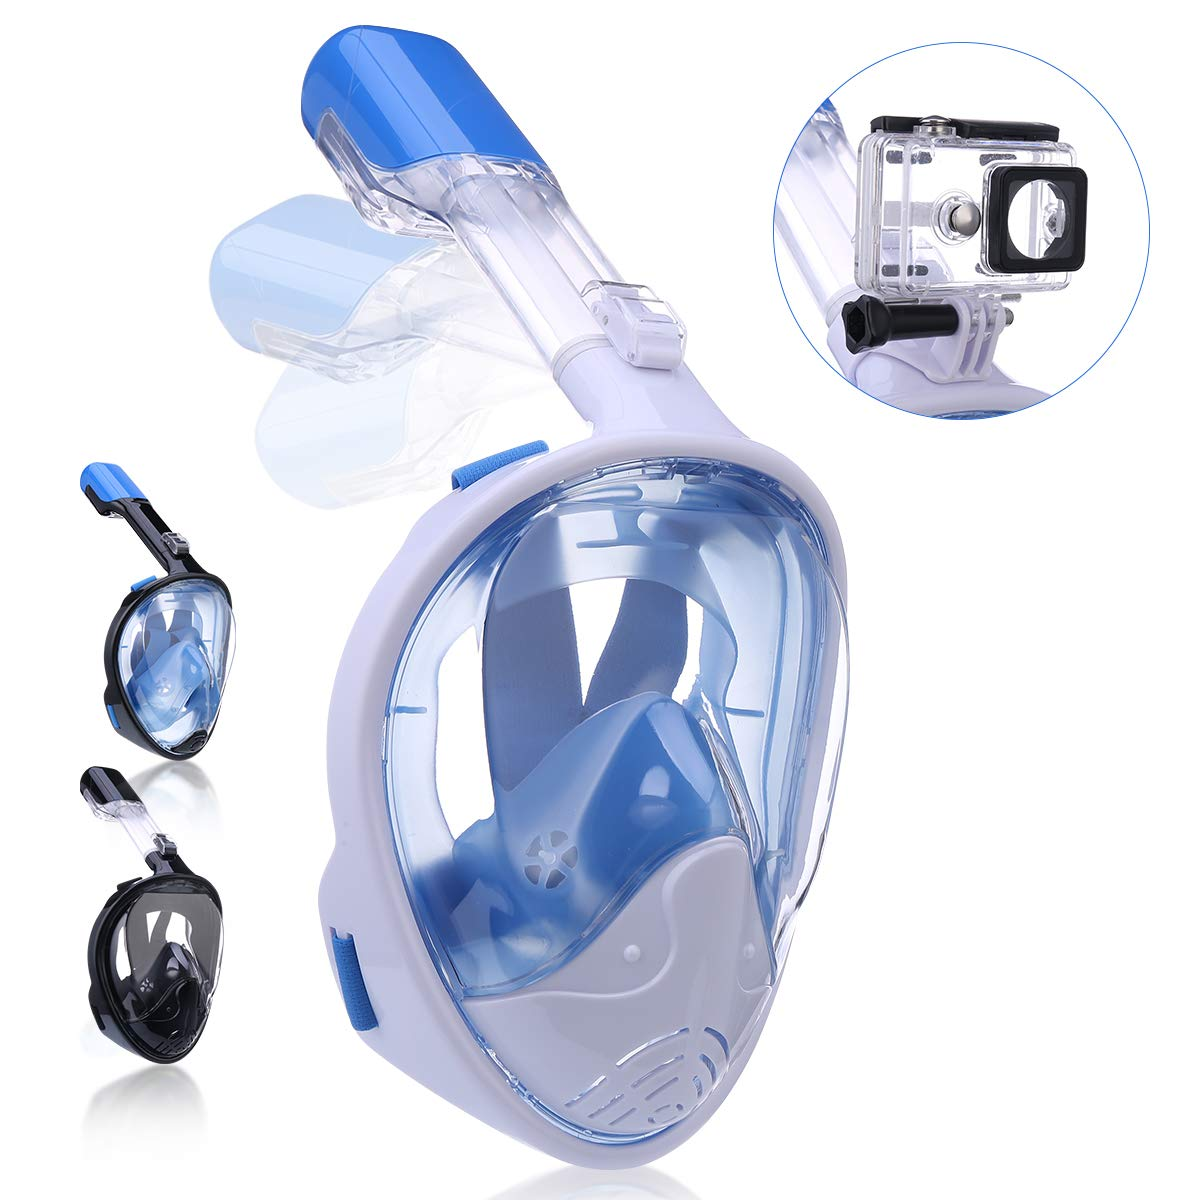 QingSong Snorkel Mask Full Face, Snorkeling Mask for Adults and Kids with Detachable Camera Mount, 180 Degree Large View Free Breath Dry Top Set Anti-Fog Anti-Leak Anti-UV